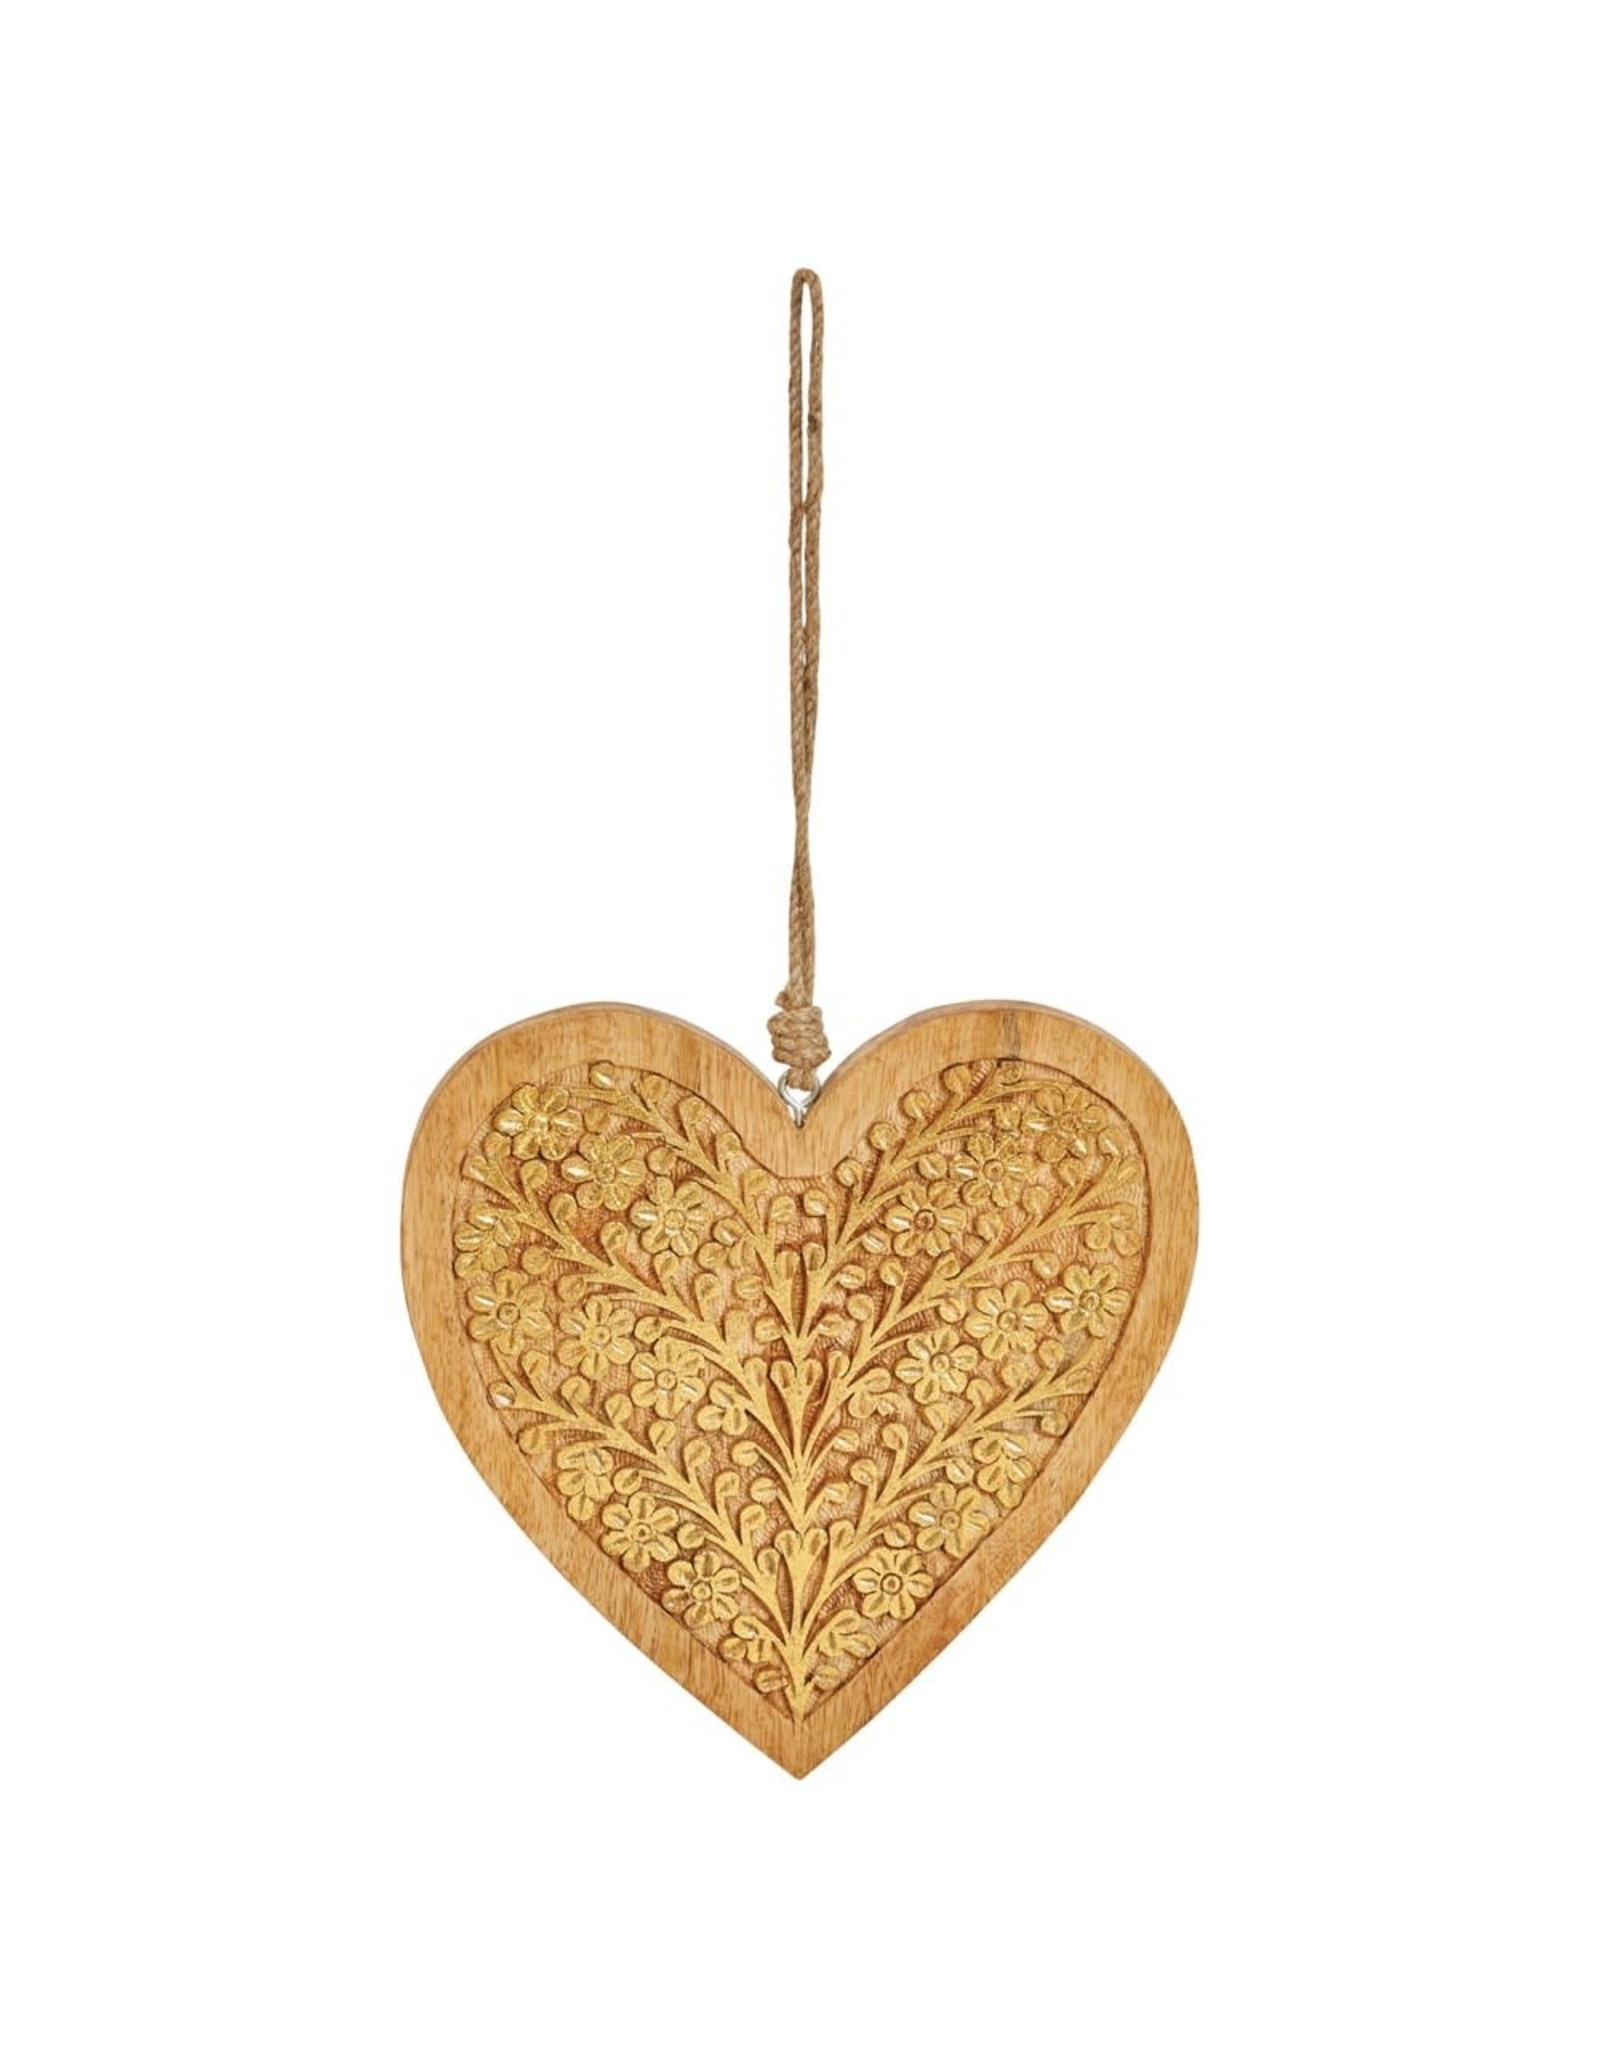 The Florist & The Merchant Hand-carved Wooden Heart Ornament, Gold Finish